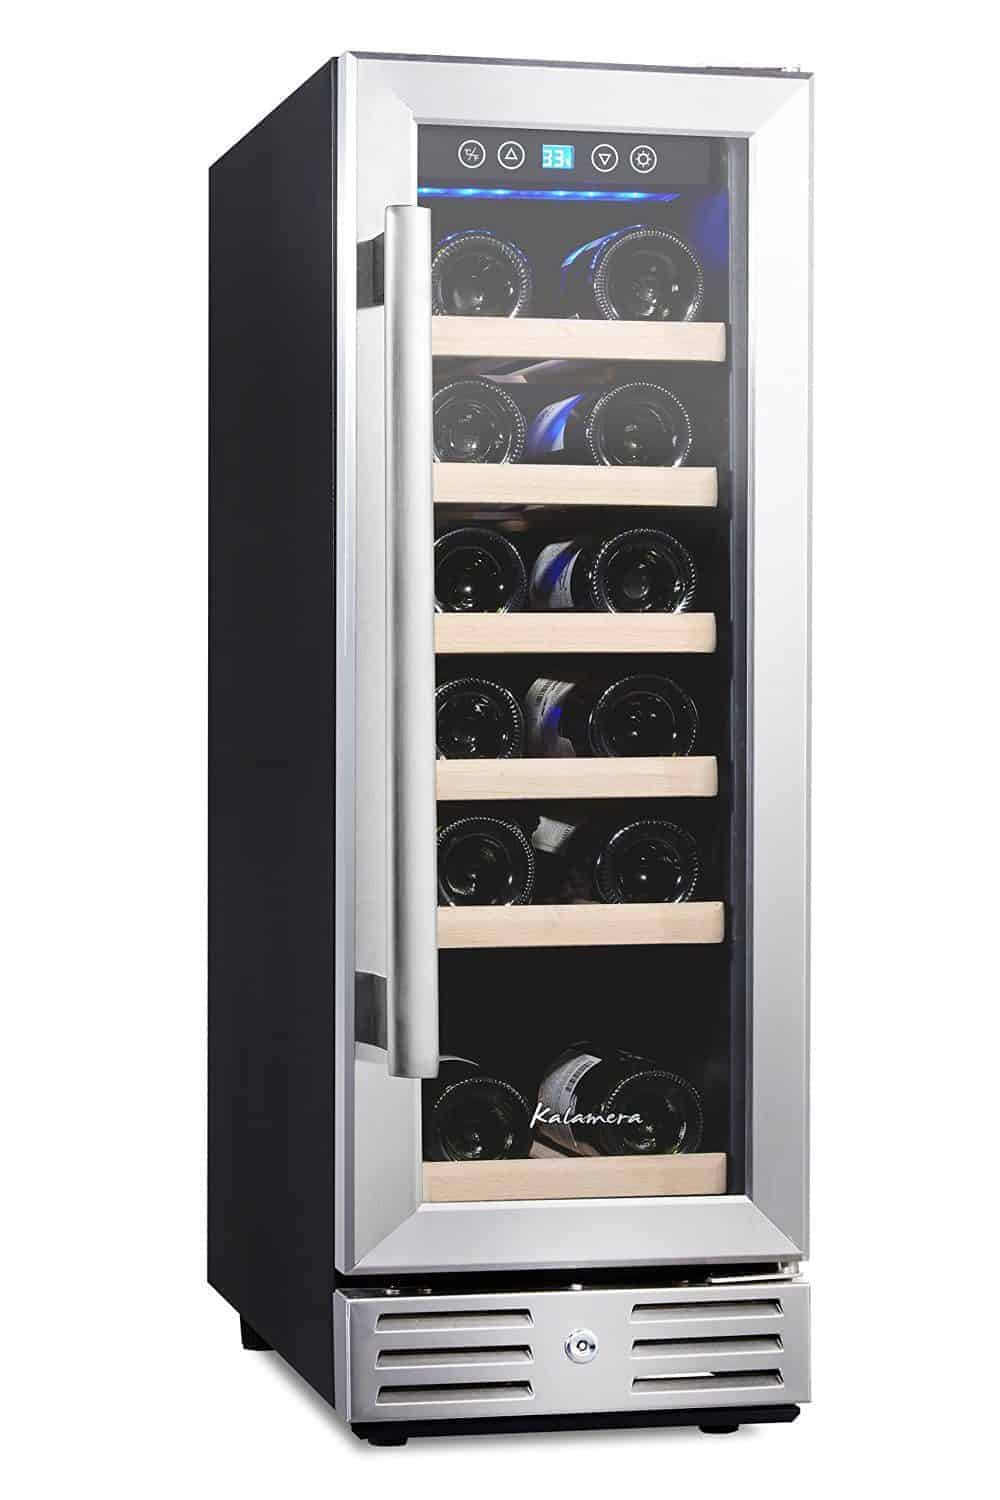 Kalamera Wine Refrigerator 18 Bottle Built-in Or Freestanding